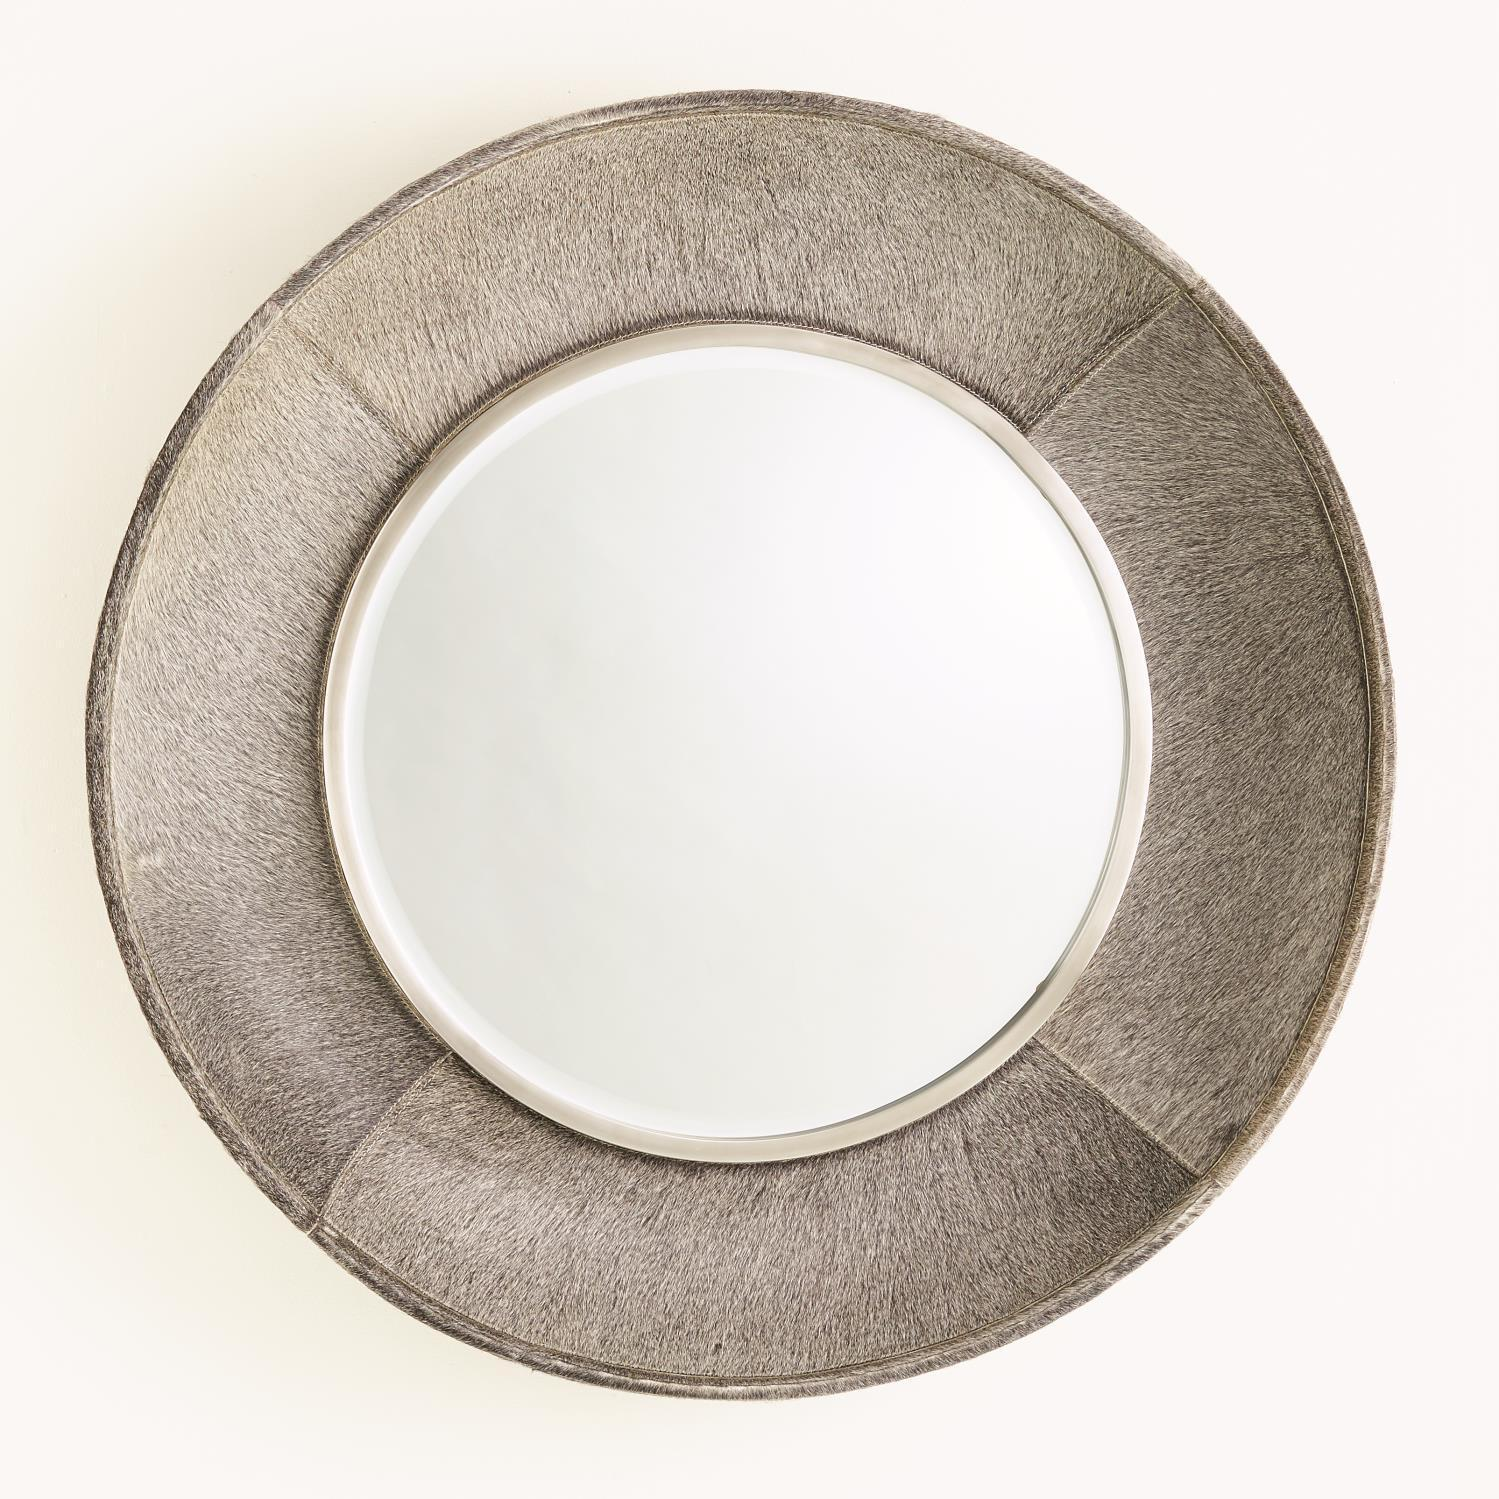 Global Views Metro Round Mirror-Grey Hair-on-Hide